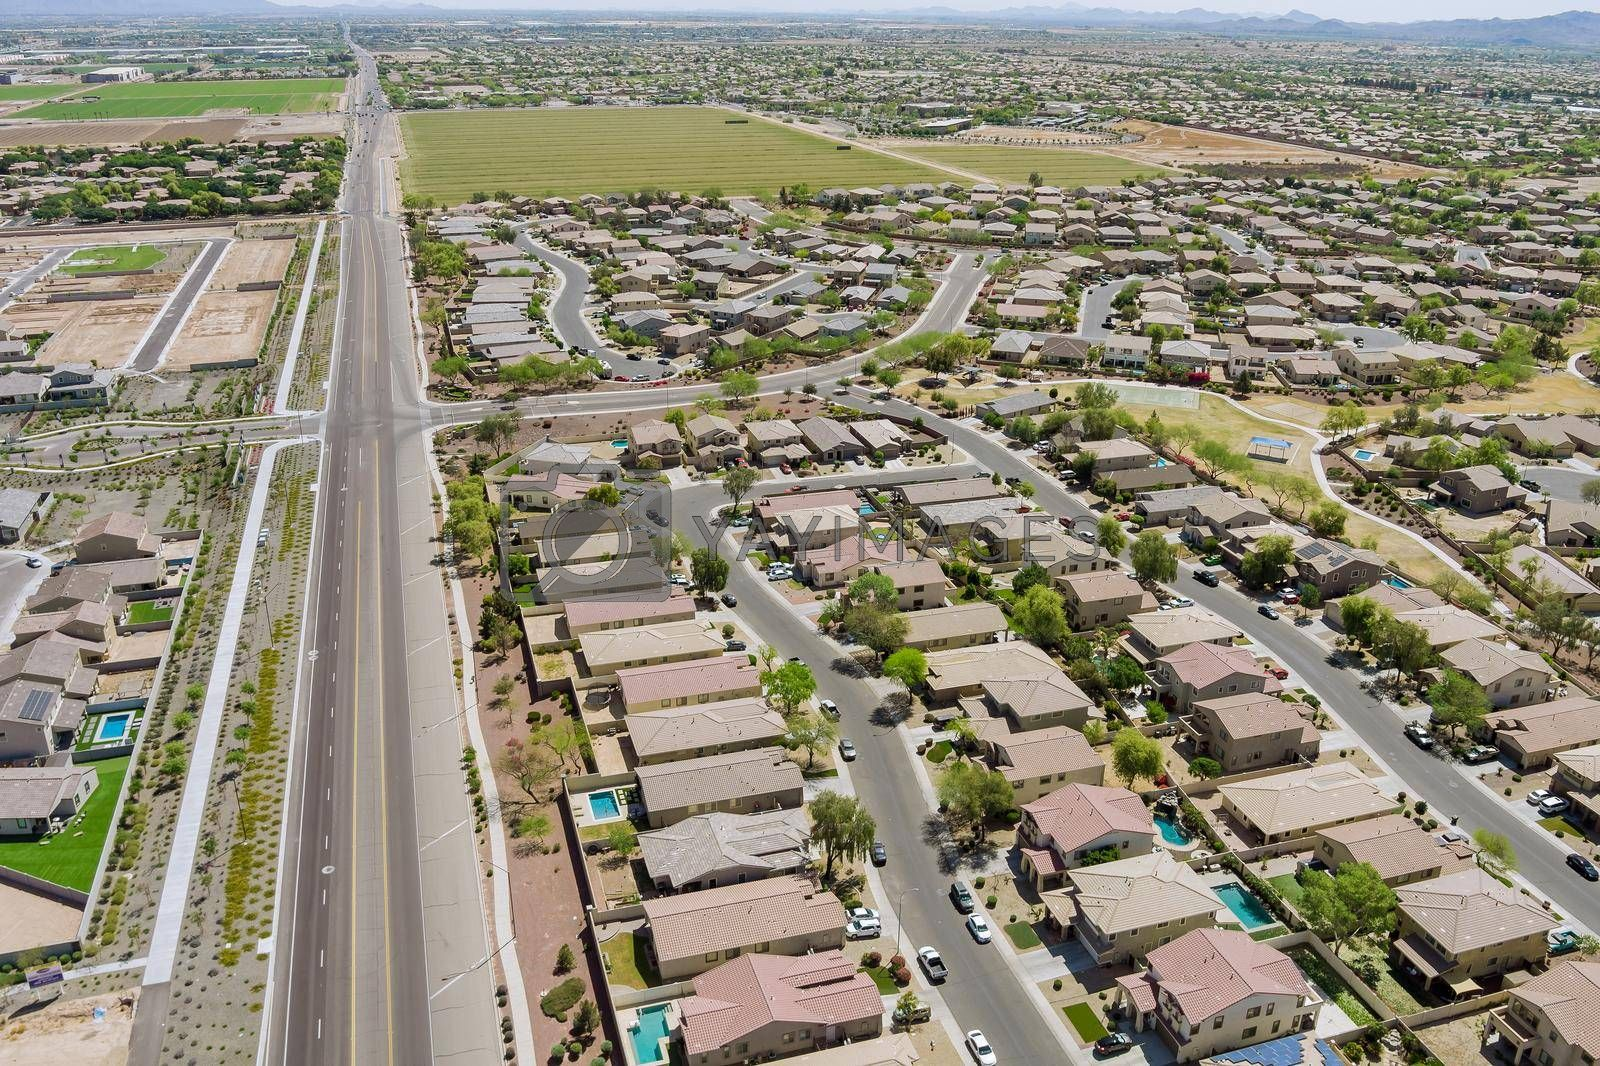 Landscape scenic aerial view of a suburban settlement in USA with detached houses the Avondale town Arizona US